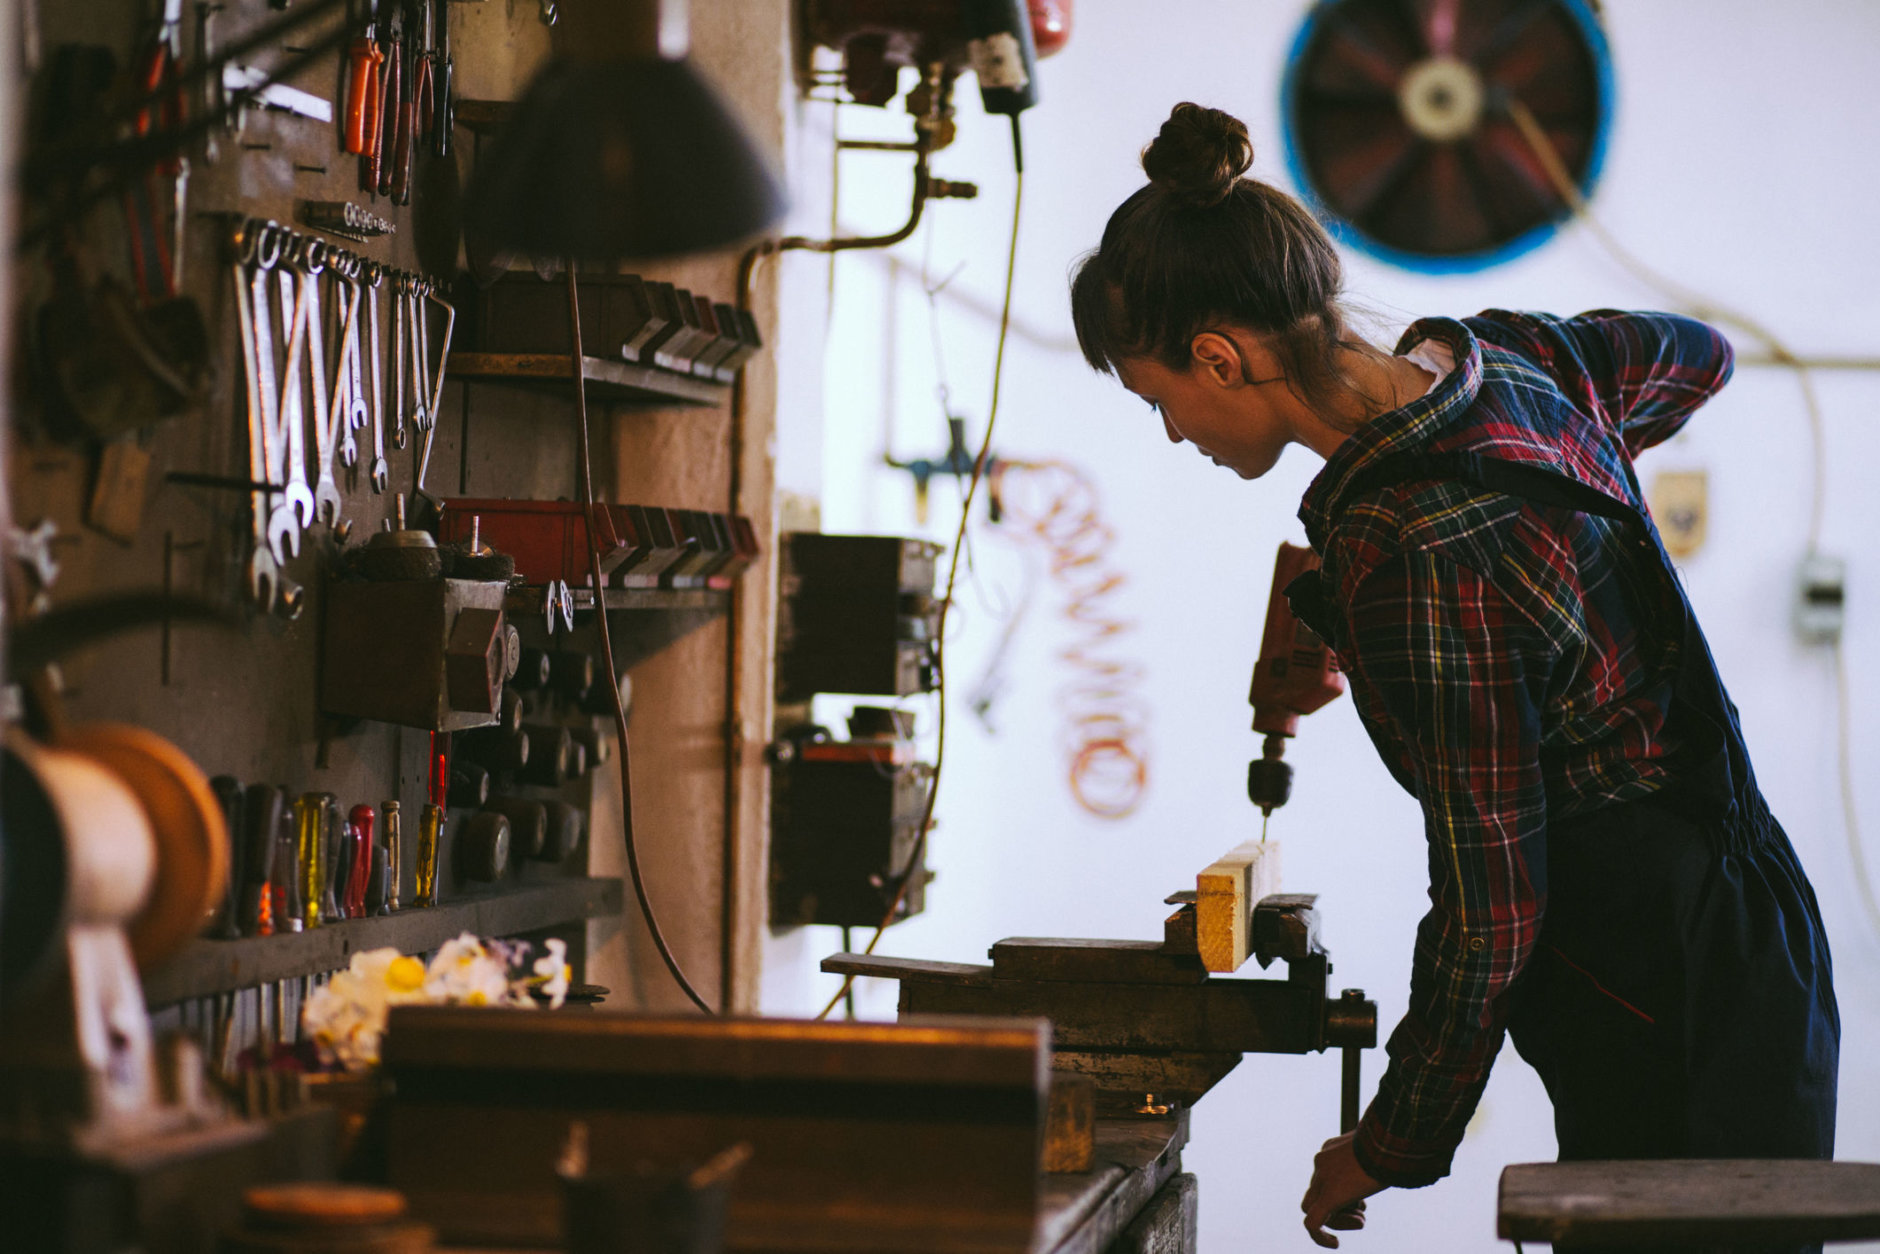 Attractive young brunette woman drilling part of the wood that's attached to clamp in her garage on working day.